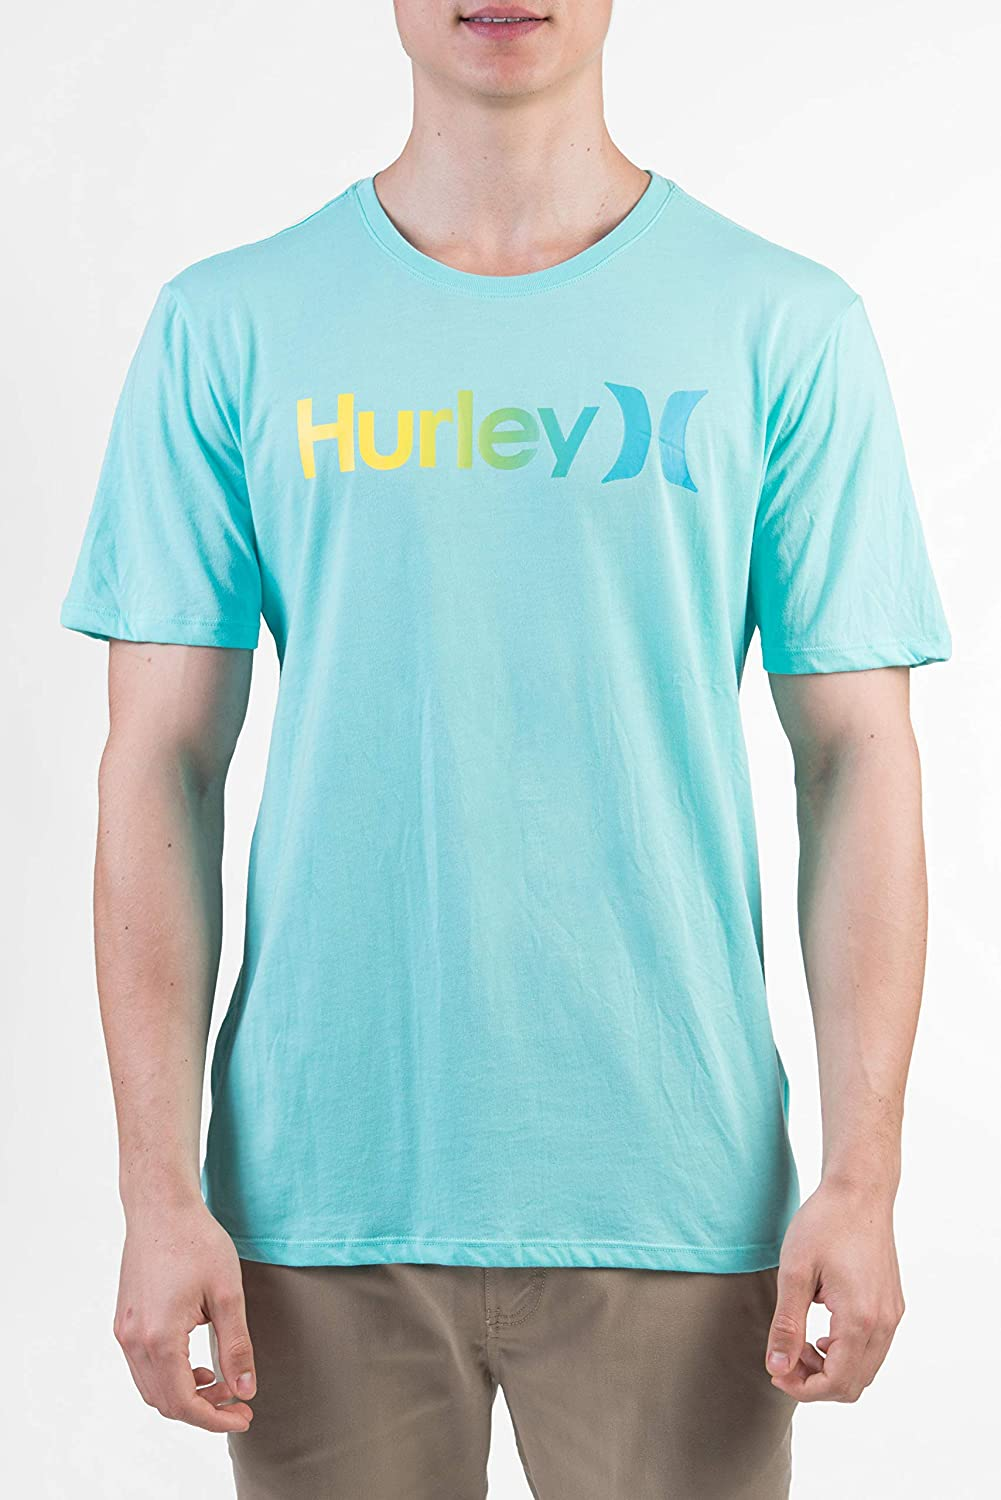 Hurley One /& Only Gradient 2.0 Short Sleeve T-Shirt in Black